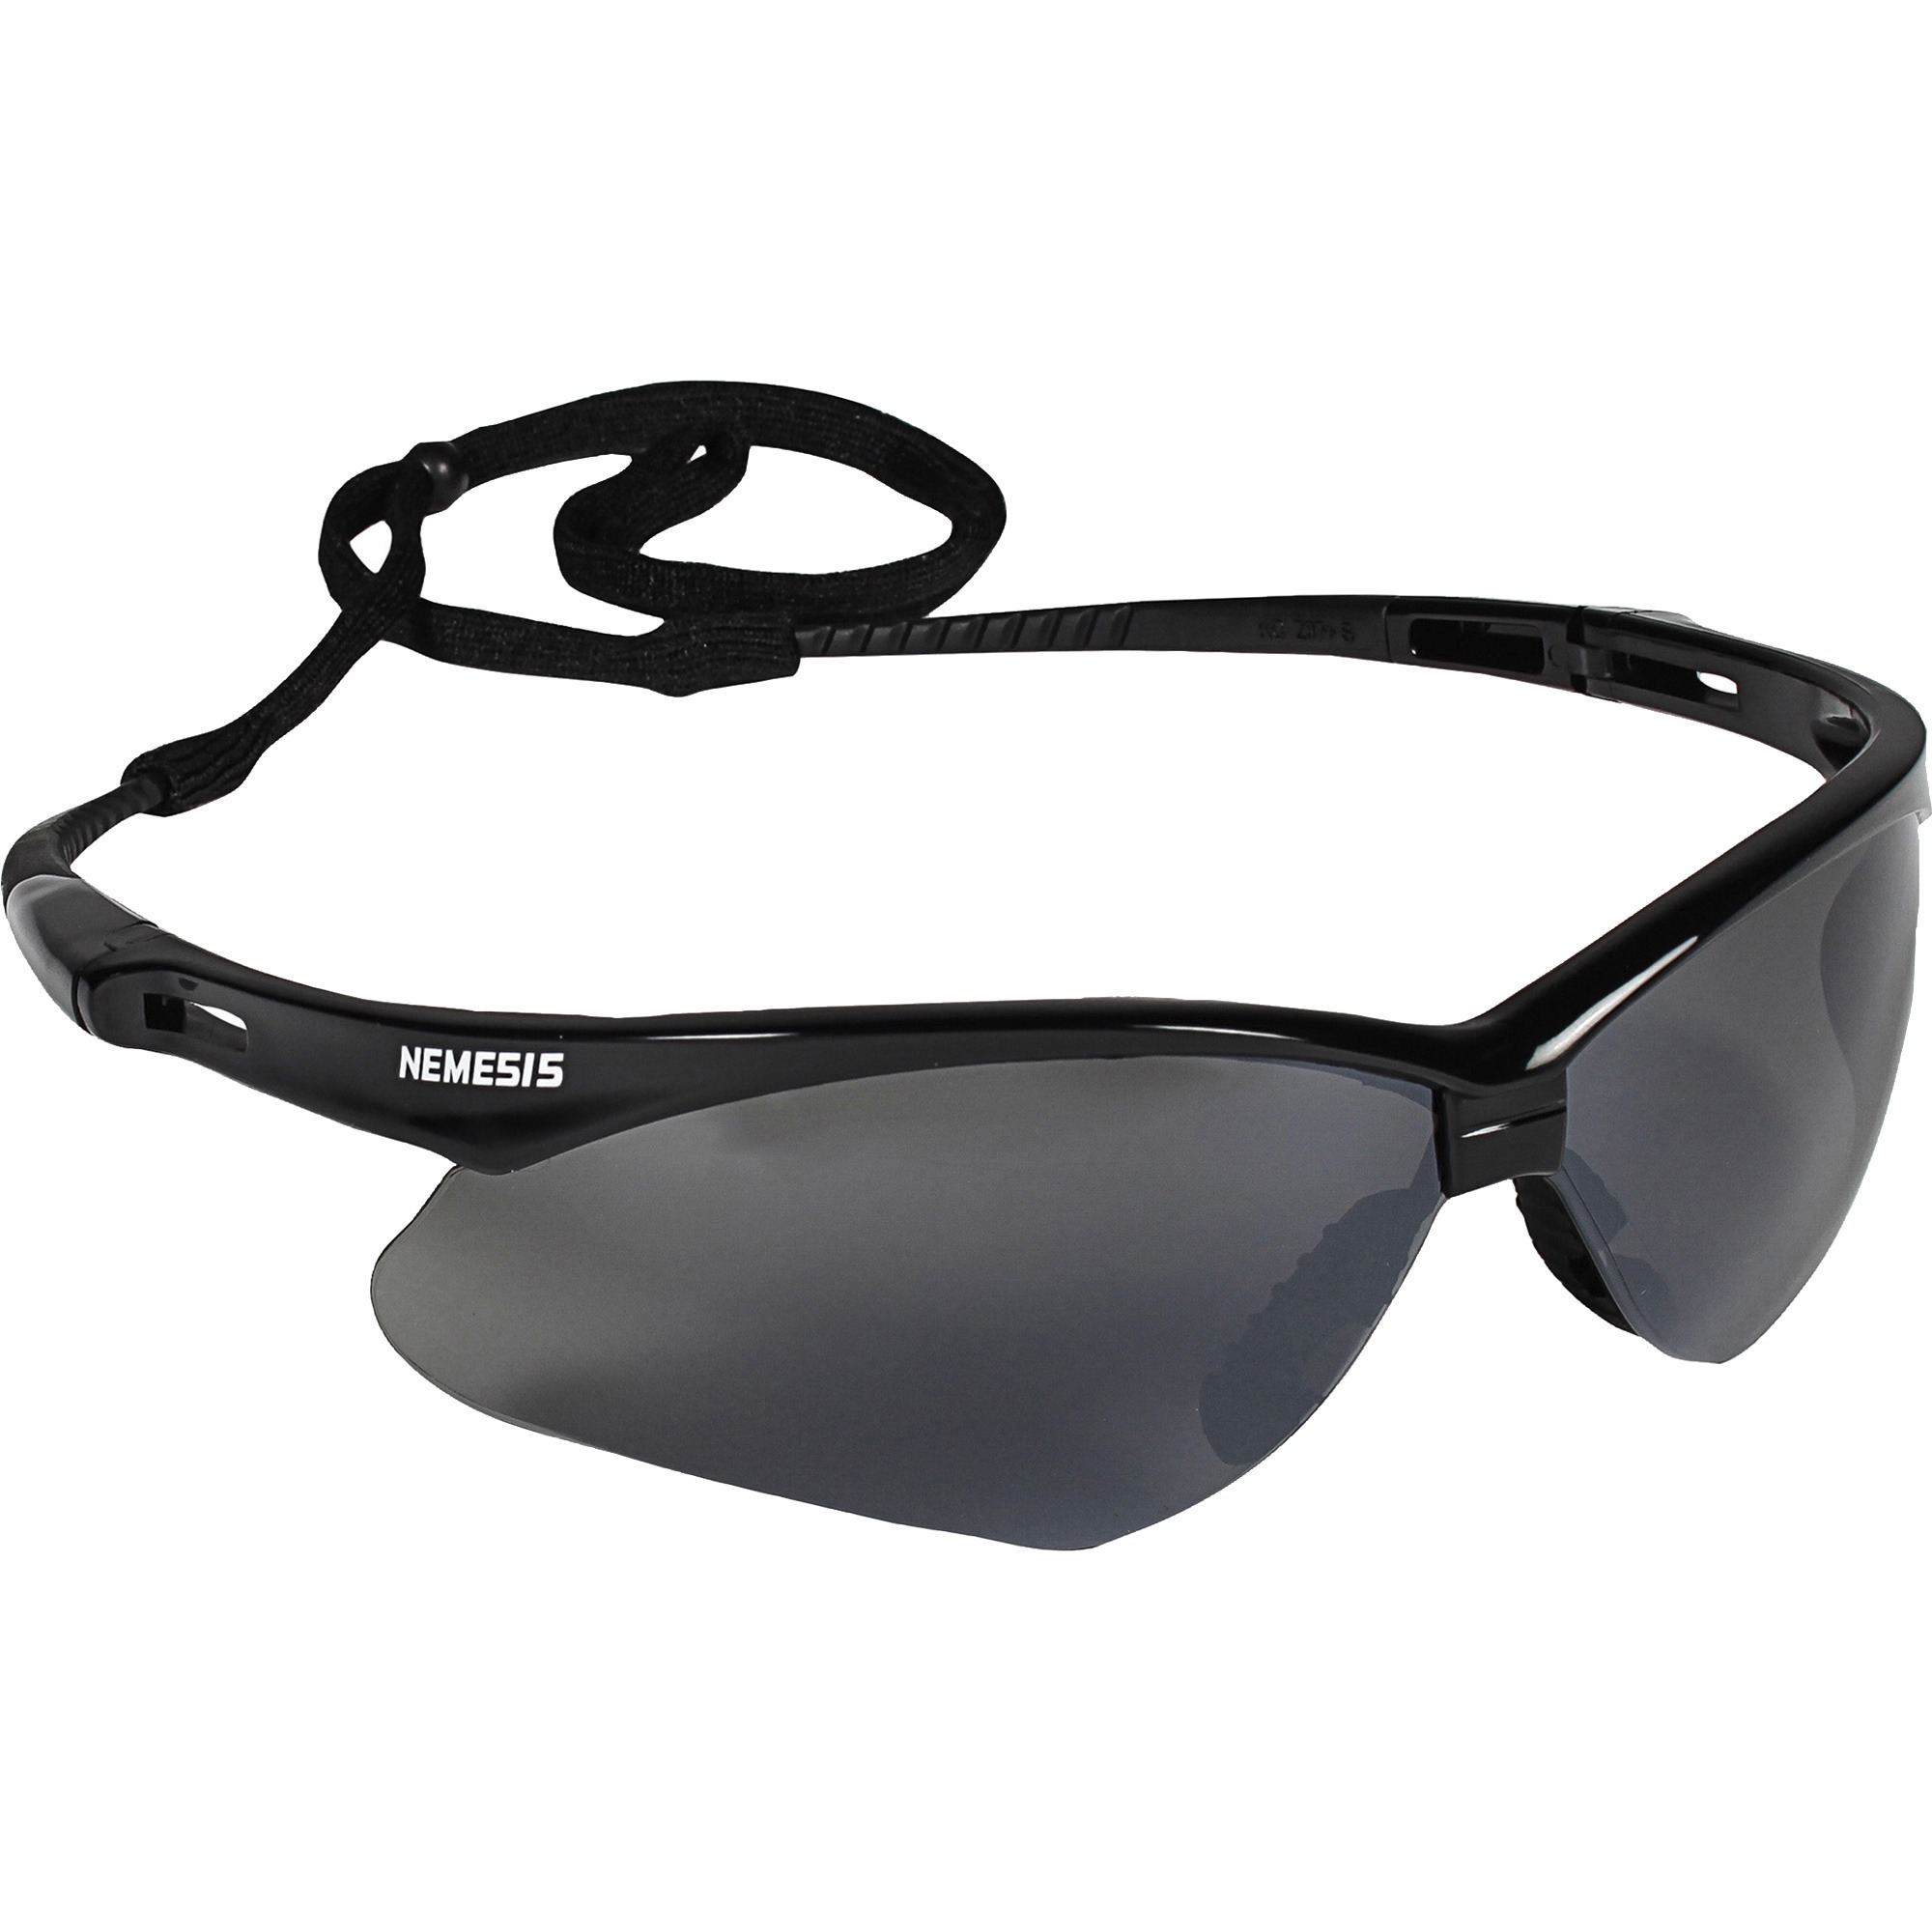 KleenGuard V30 Nemesis Safety Eyewear - Flexible, Lightweight, Comfortable, Scratch Resistant - Ultraviolet Protection - Polycarbonate Lens - Smoke, Black - 12 / Carton